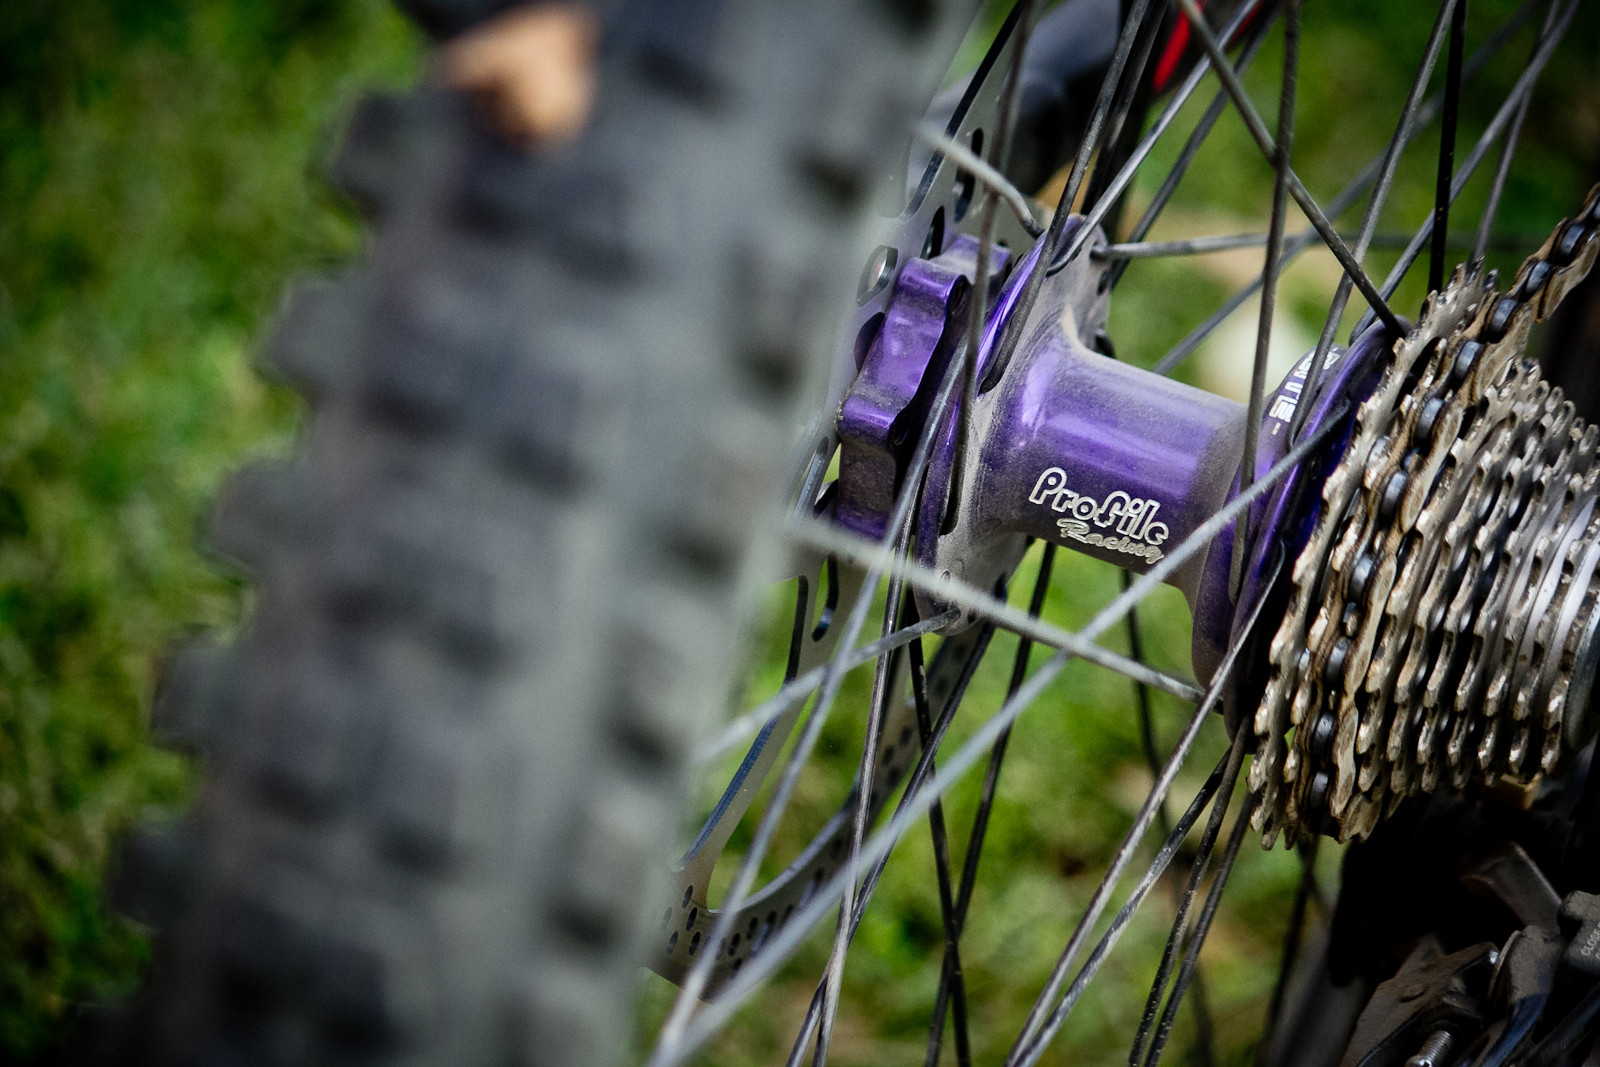 Profile Elite Hubs on Sun MTX Rims for Mike Montgomery at